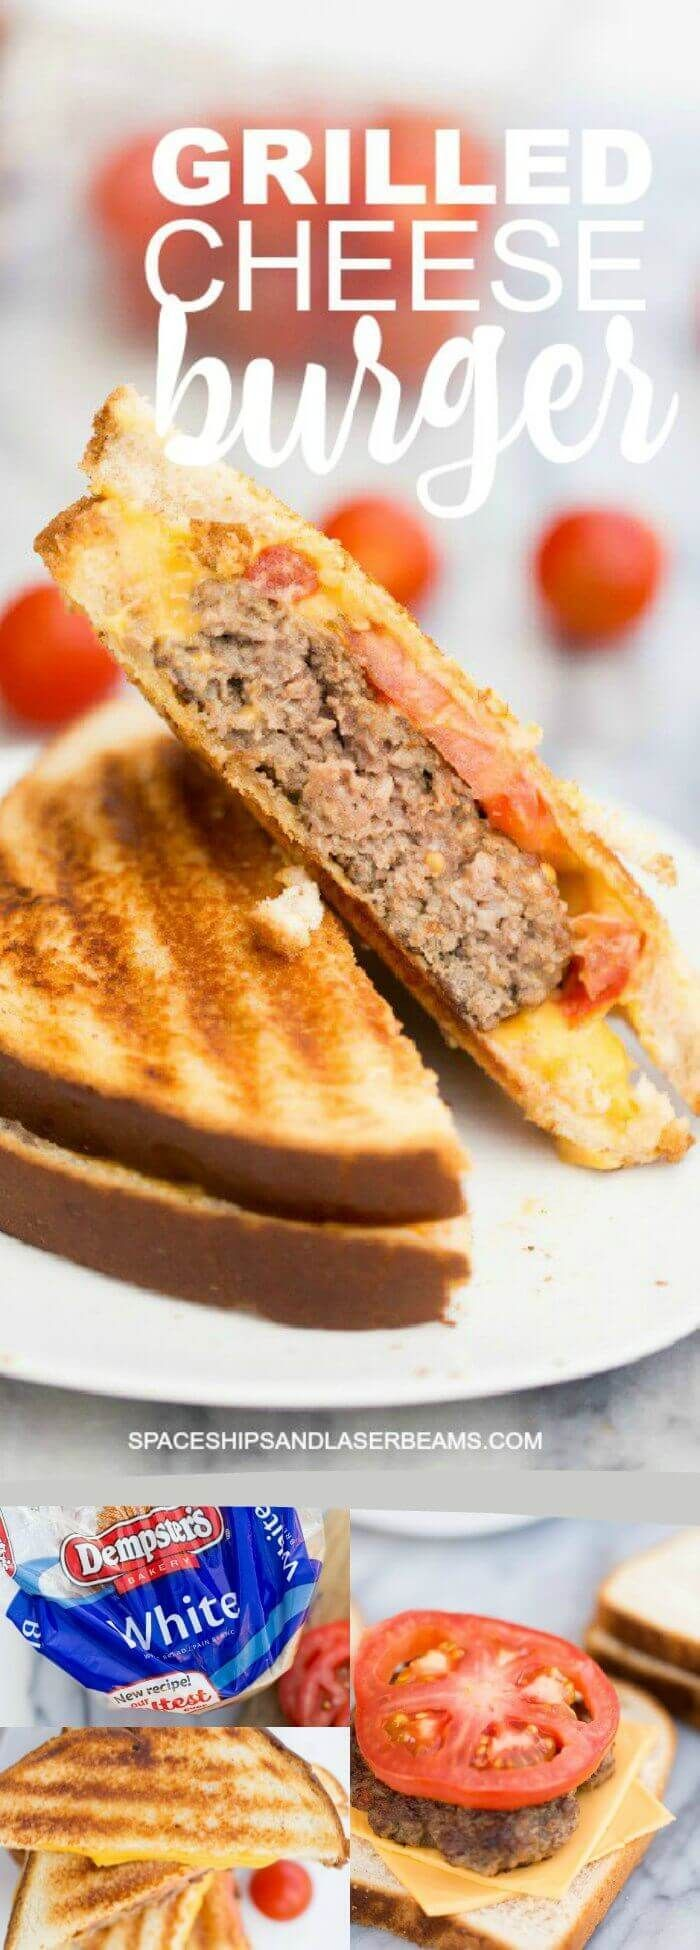 Grilled Cheese Burger Recipe via @spaceshipslb @dempsters #breadventure #NationalGrilledCheeseDay